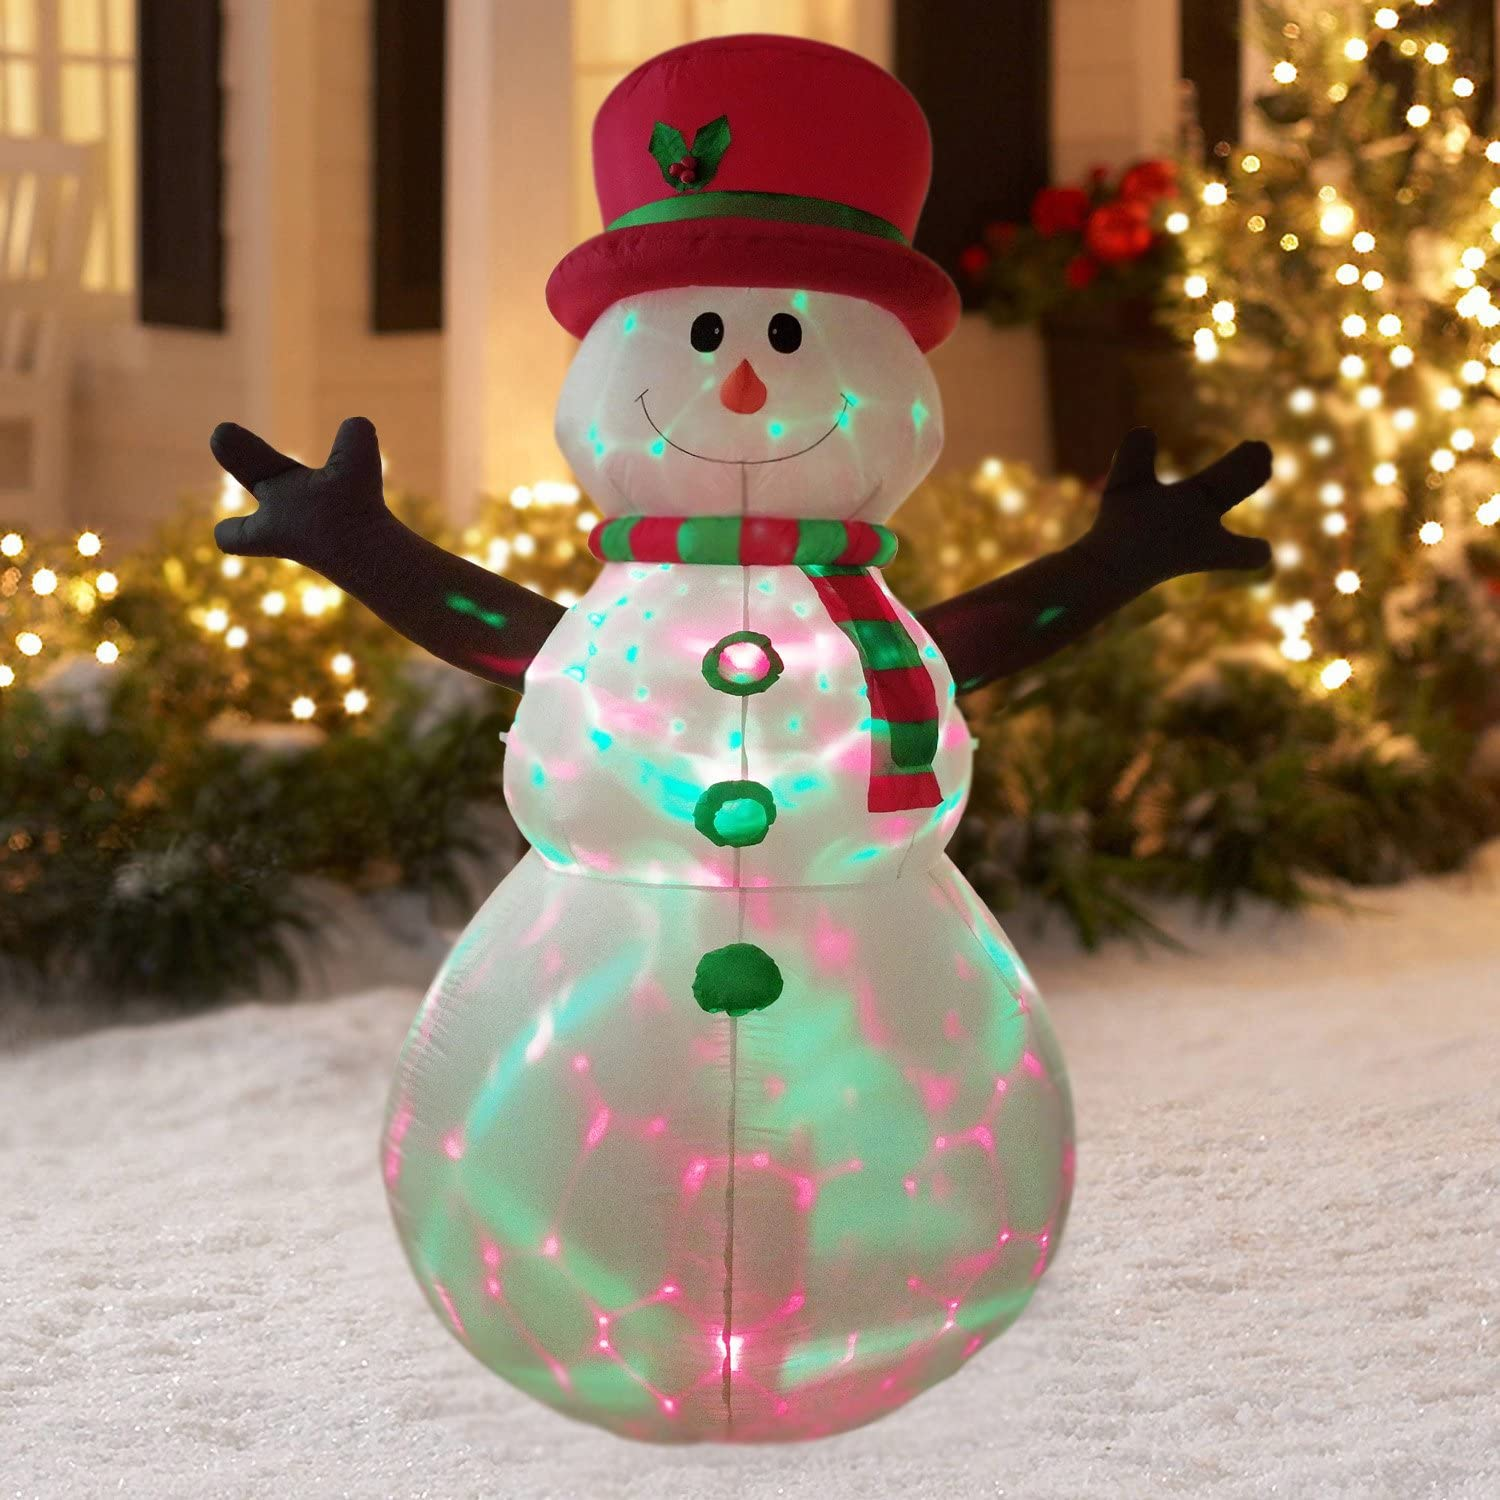 Snowman is great outdoor Christmas decoration idea